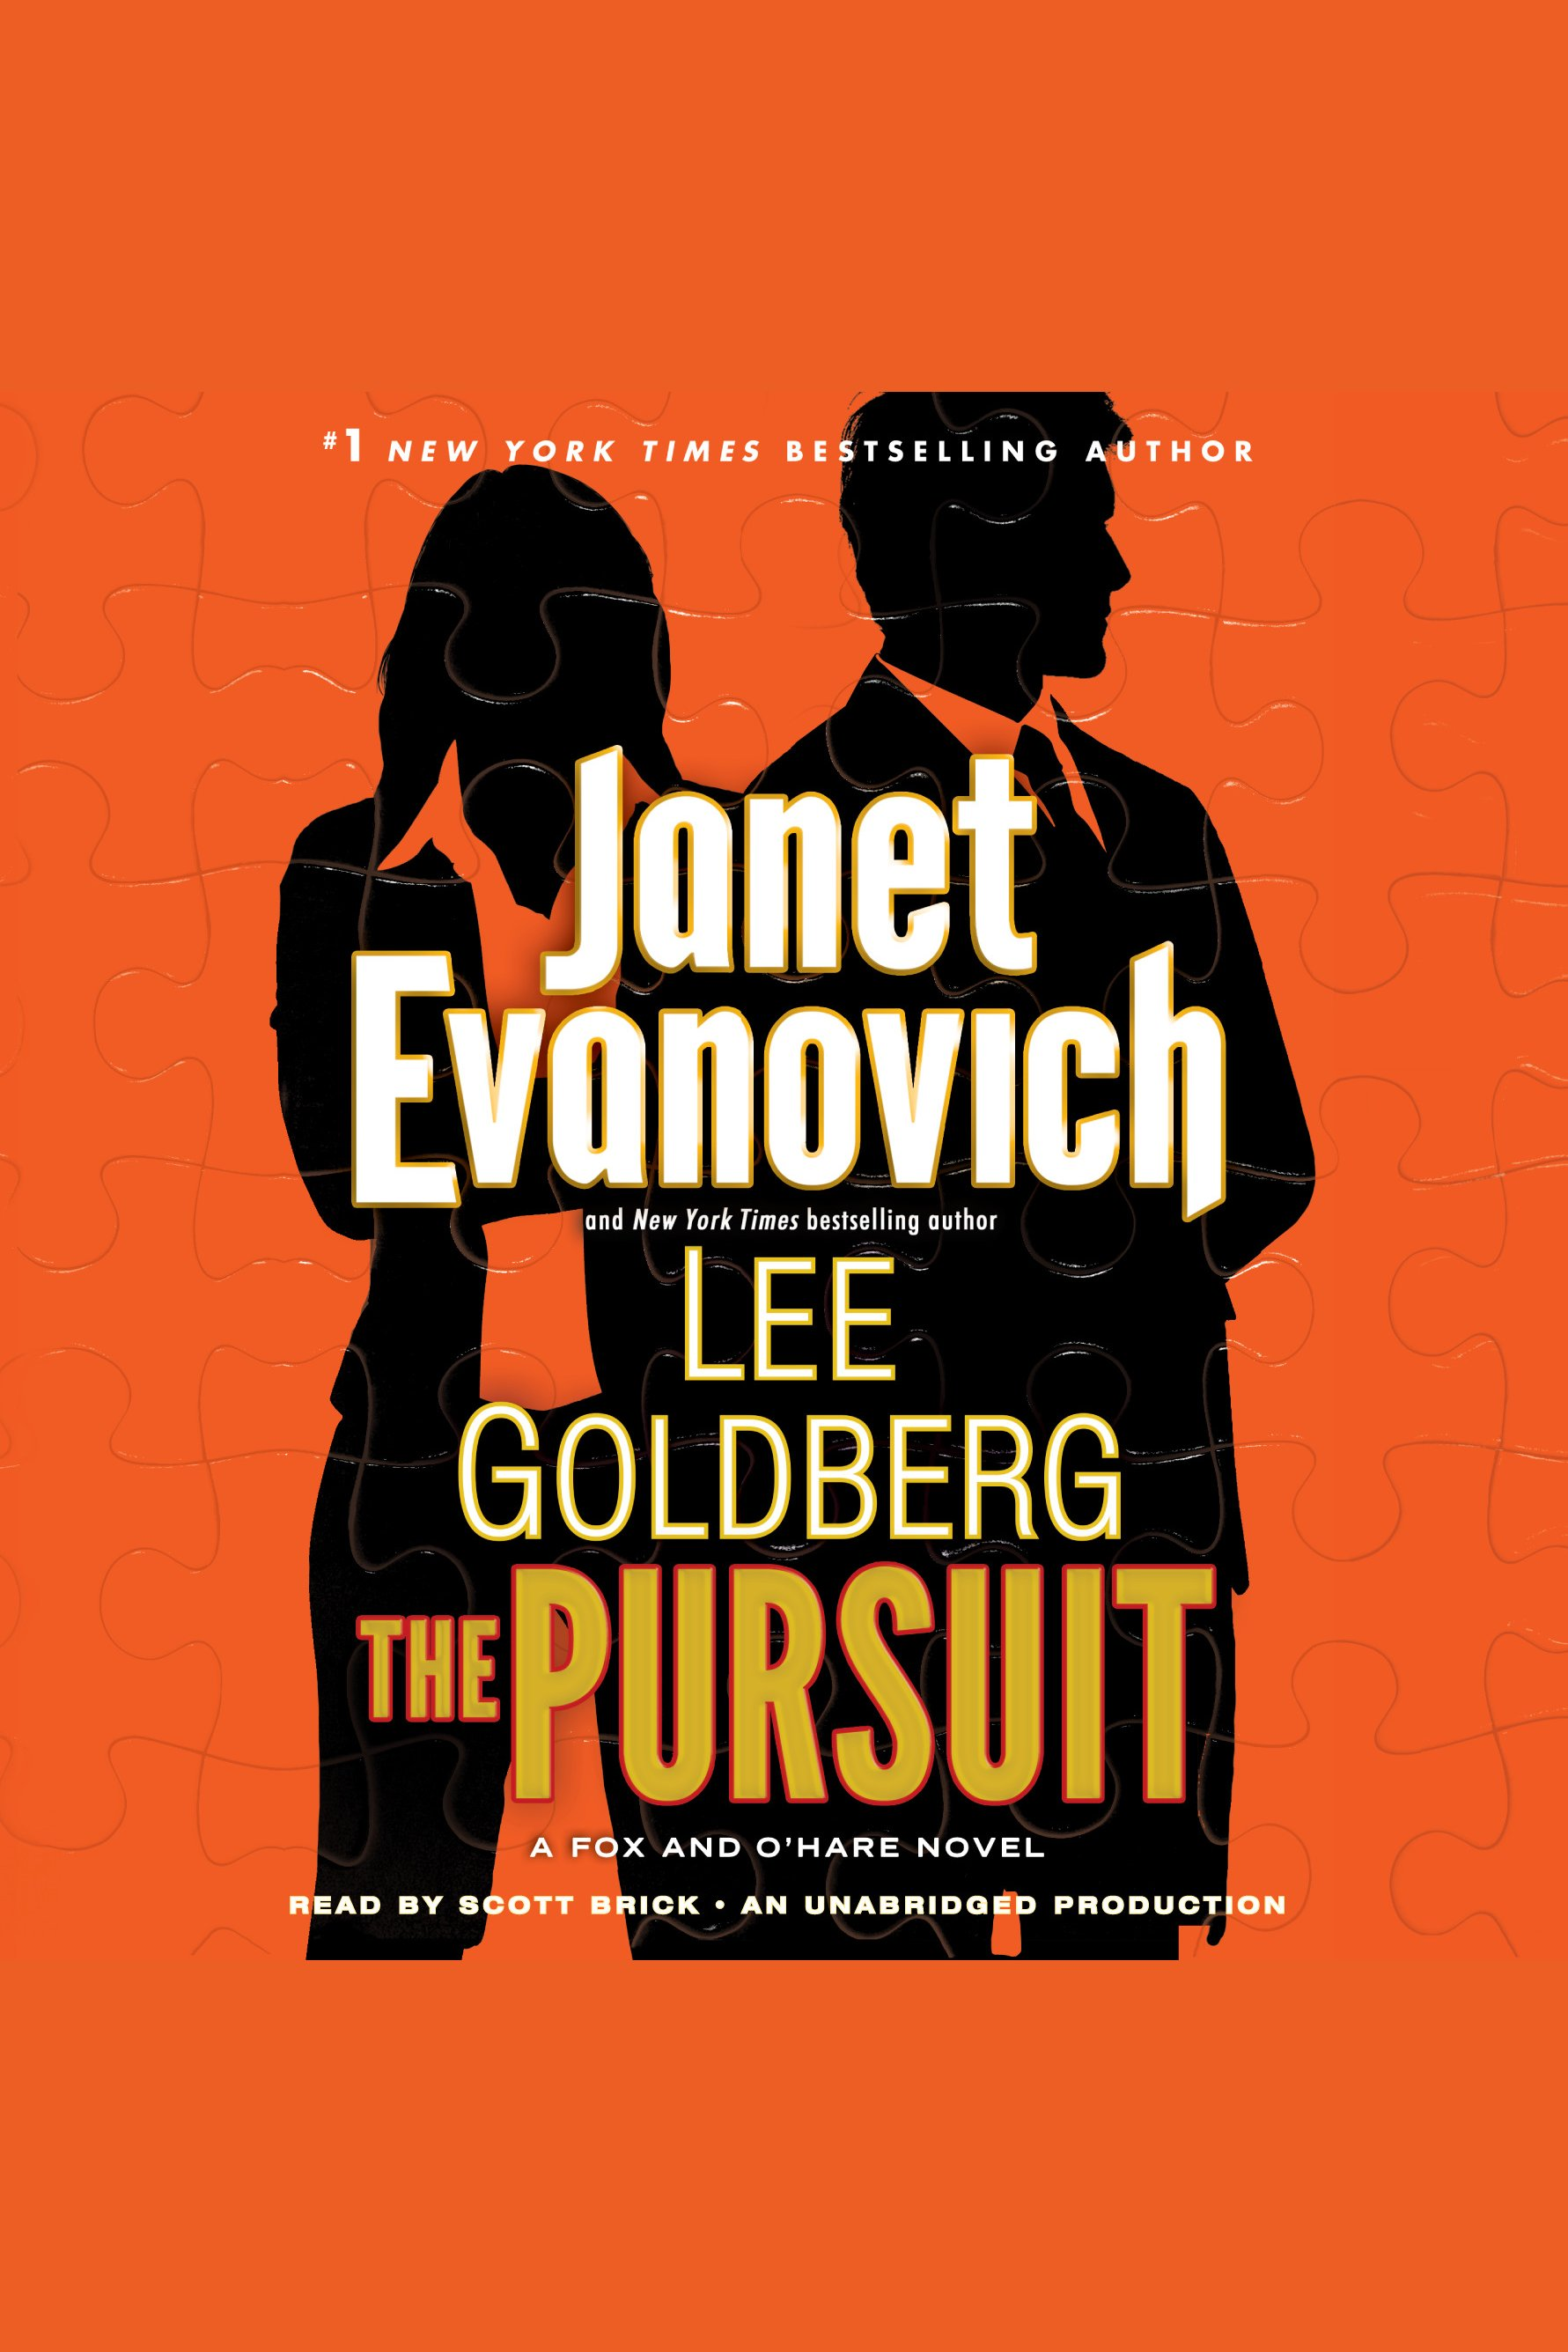 The pursuit cover image